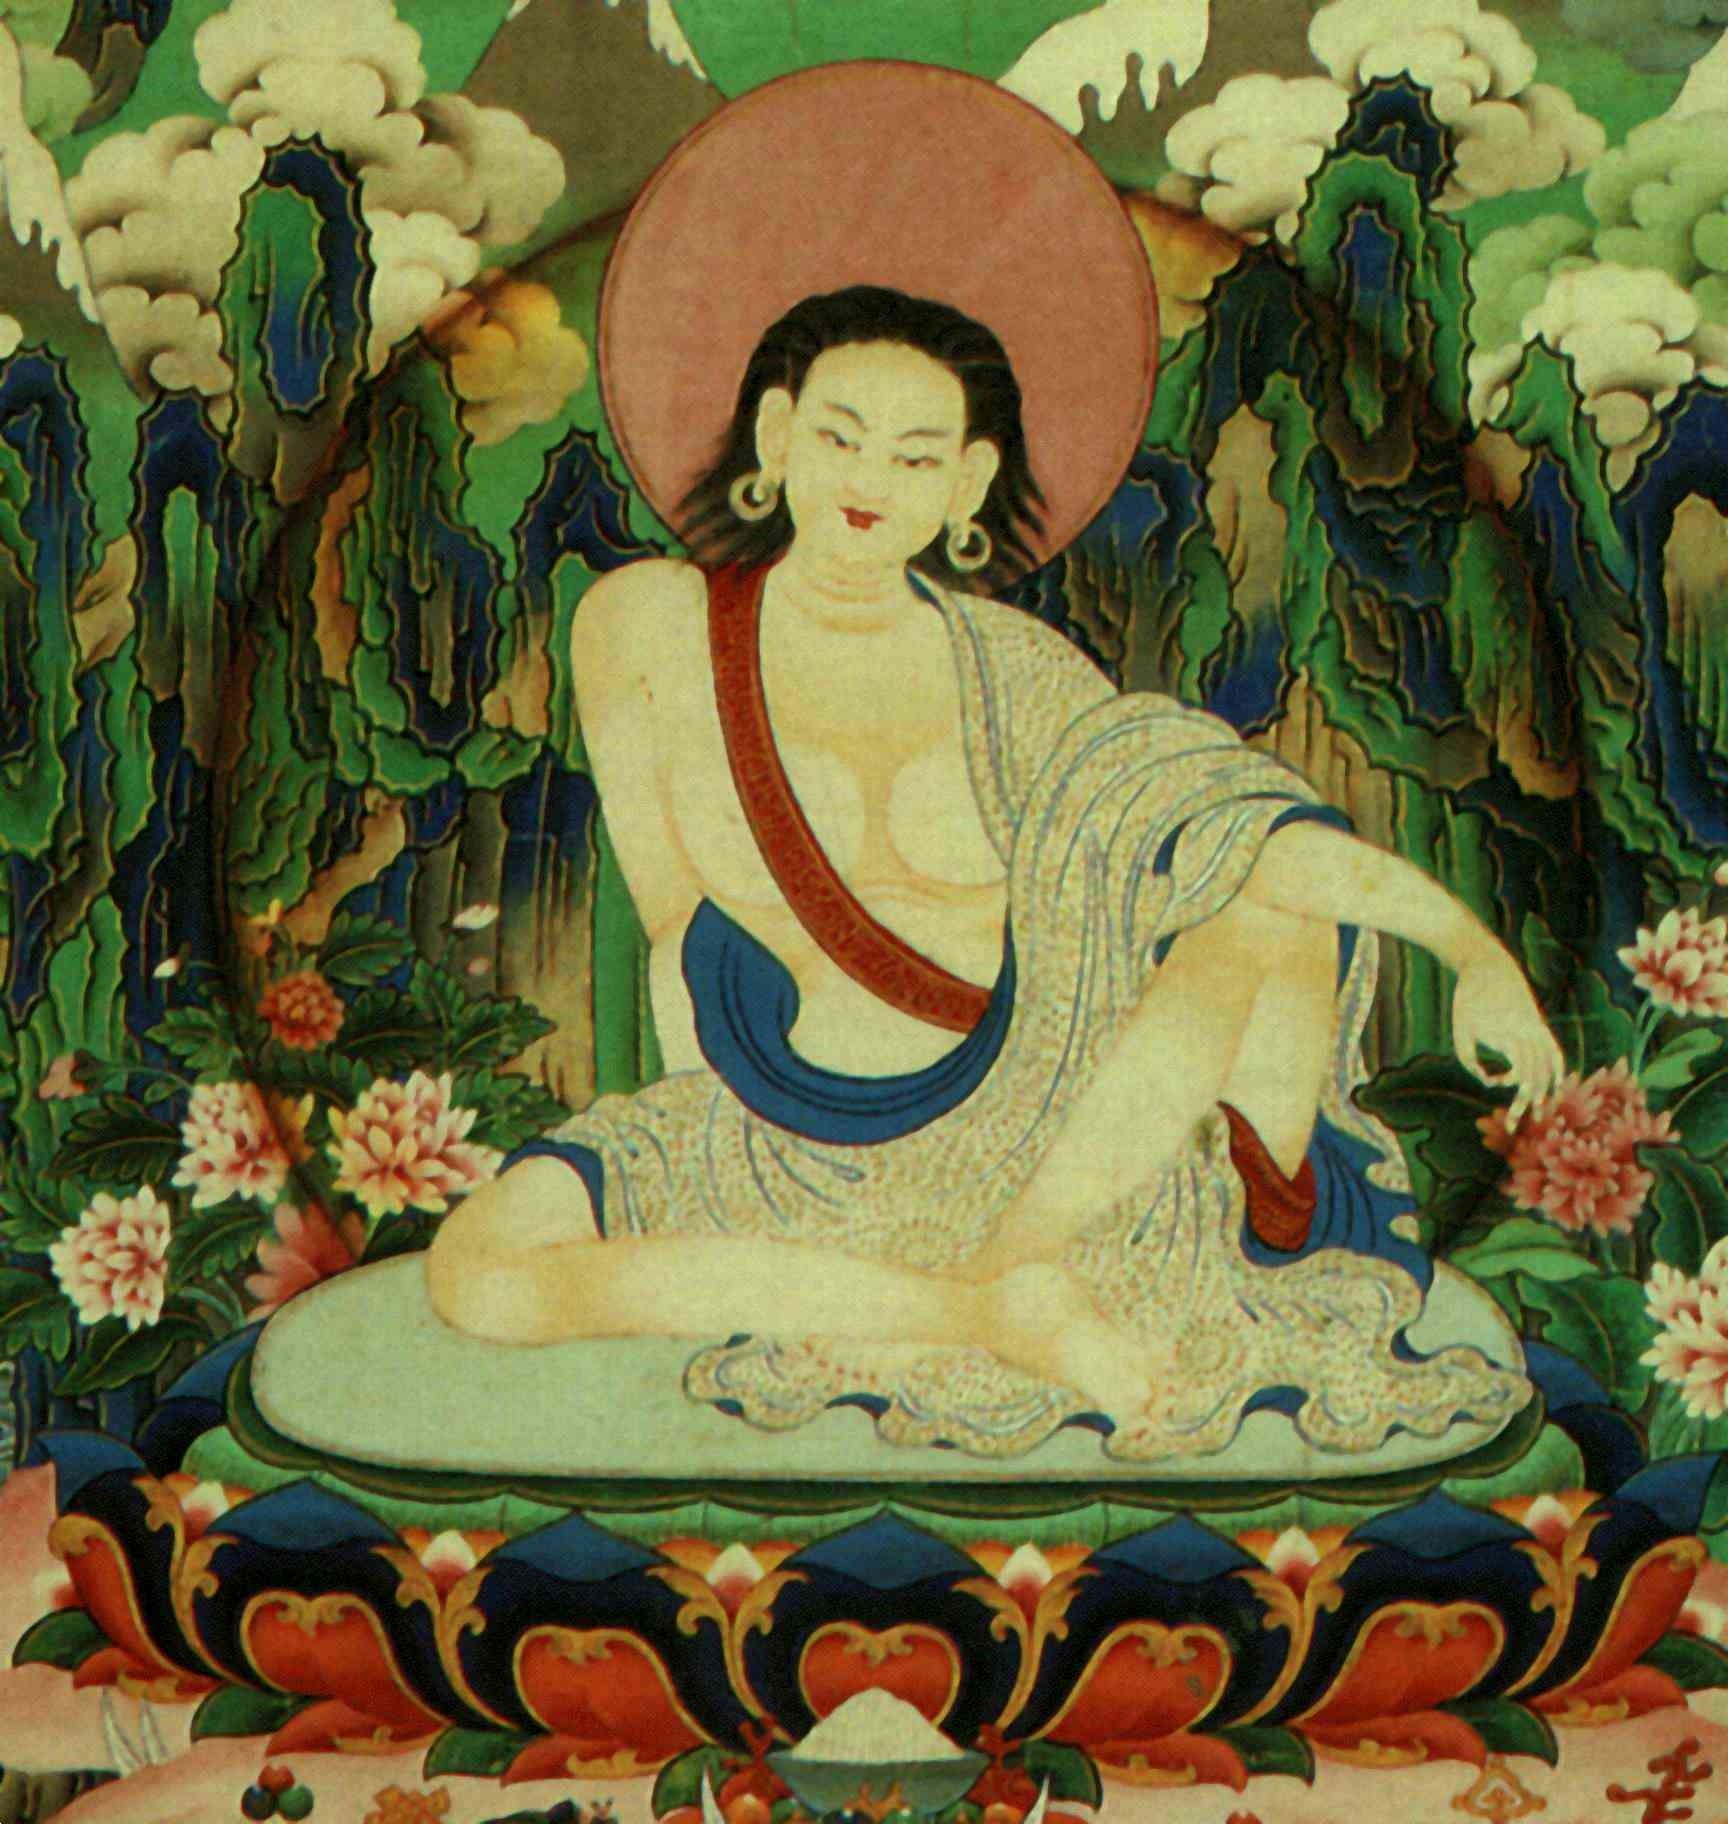 Murder, Magic, and Redemption – the Story of Milarepa | The First Gate